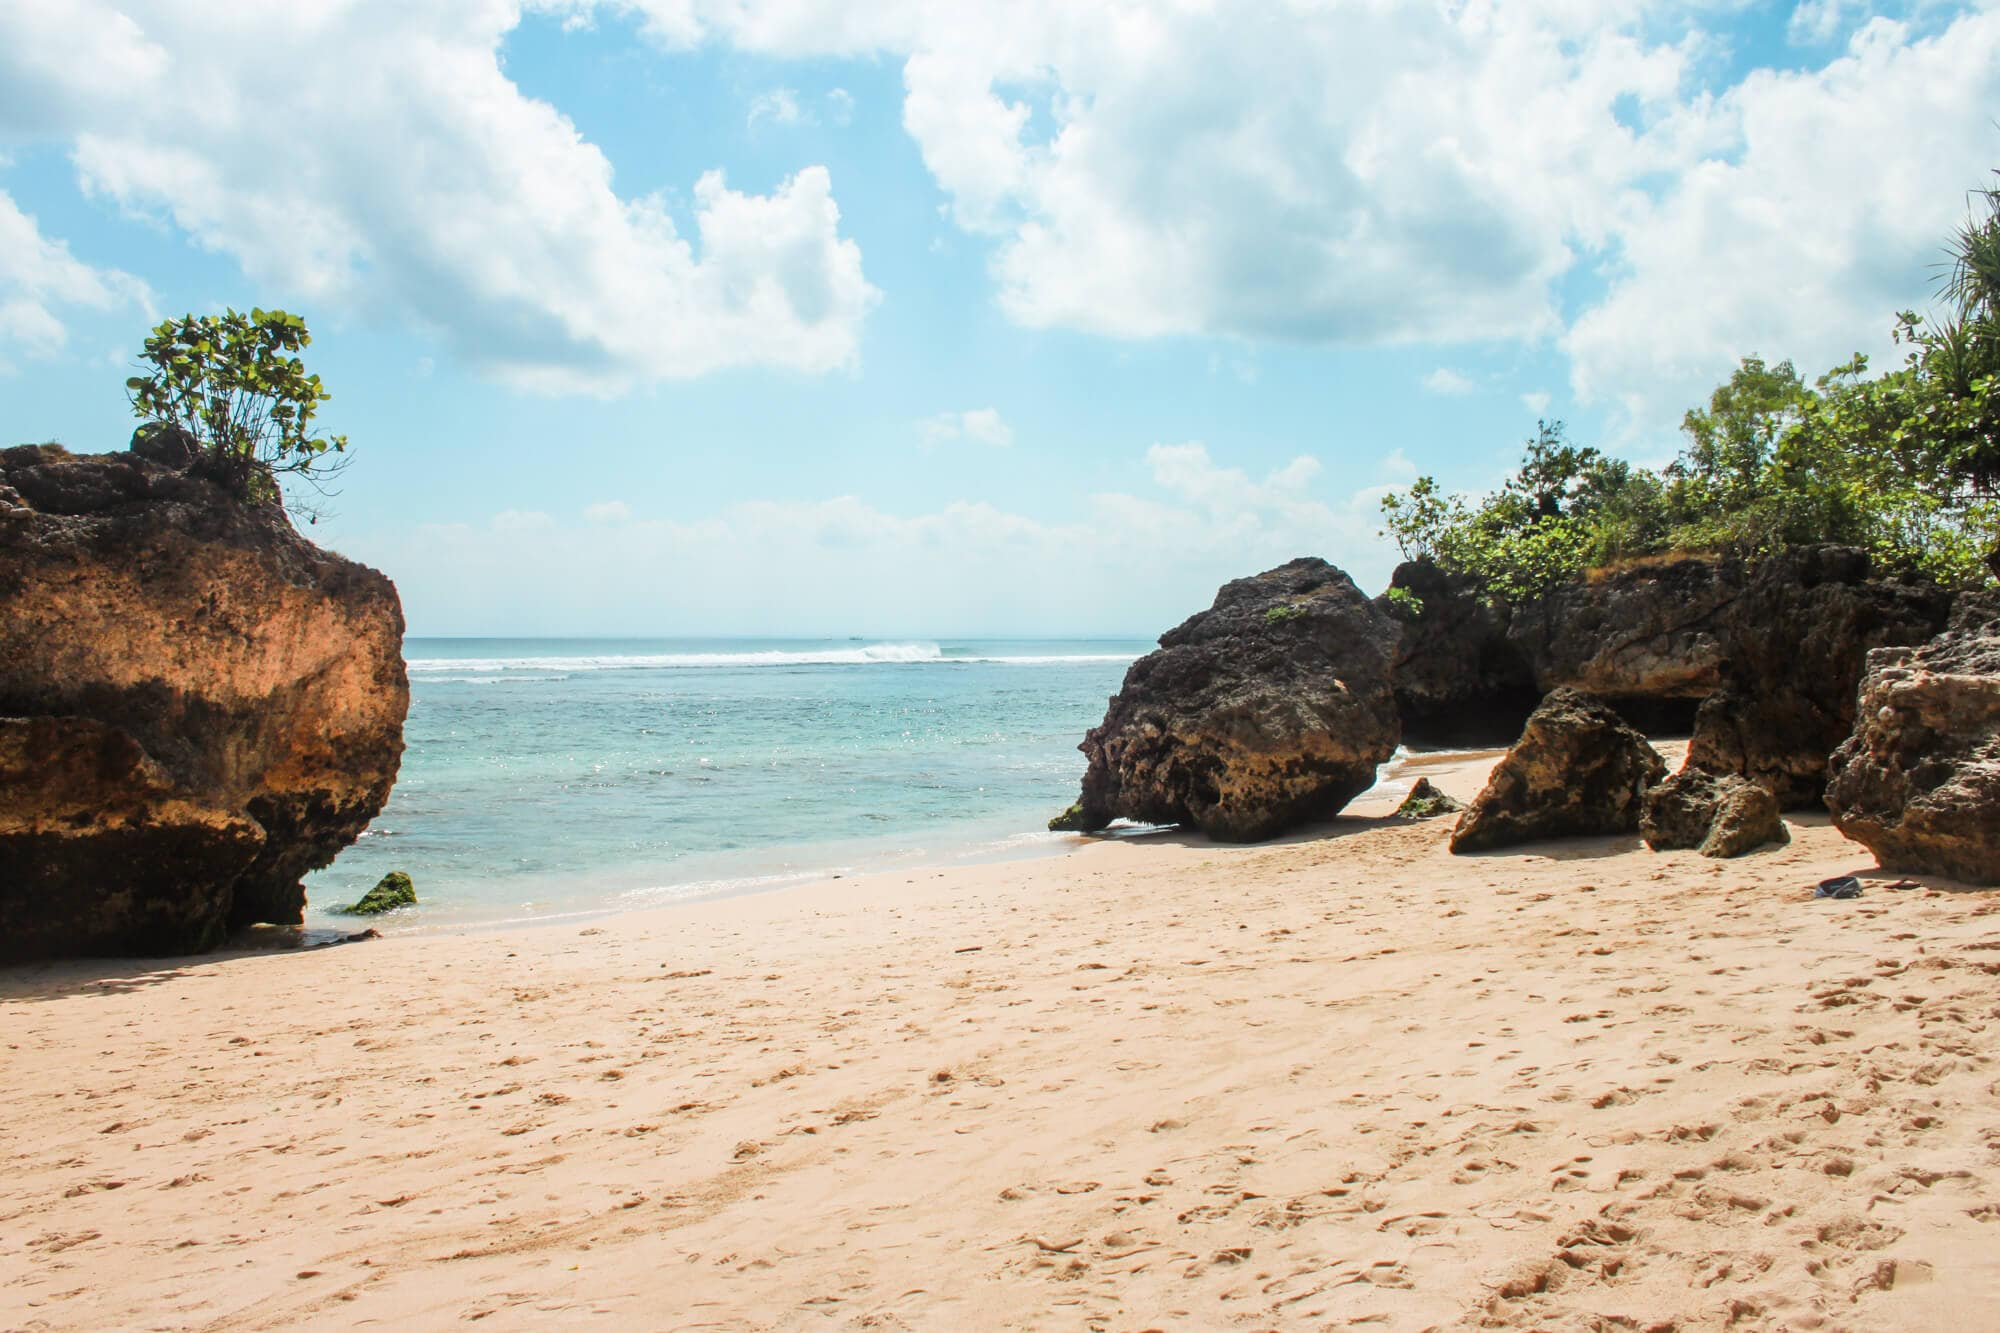 Where to stay in Bali: A complete guide to the different areas on the island - Padang Padang Beach in South Bali